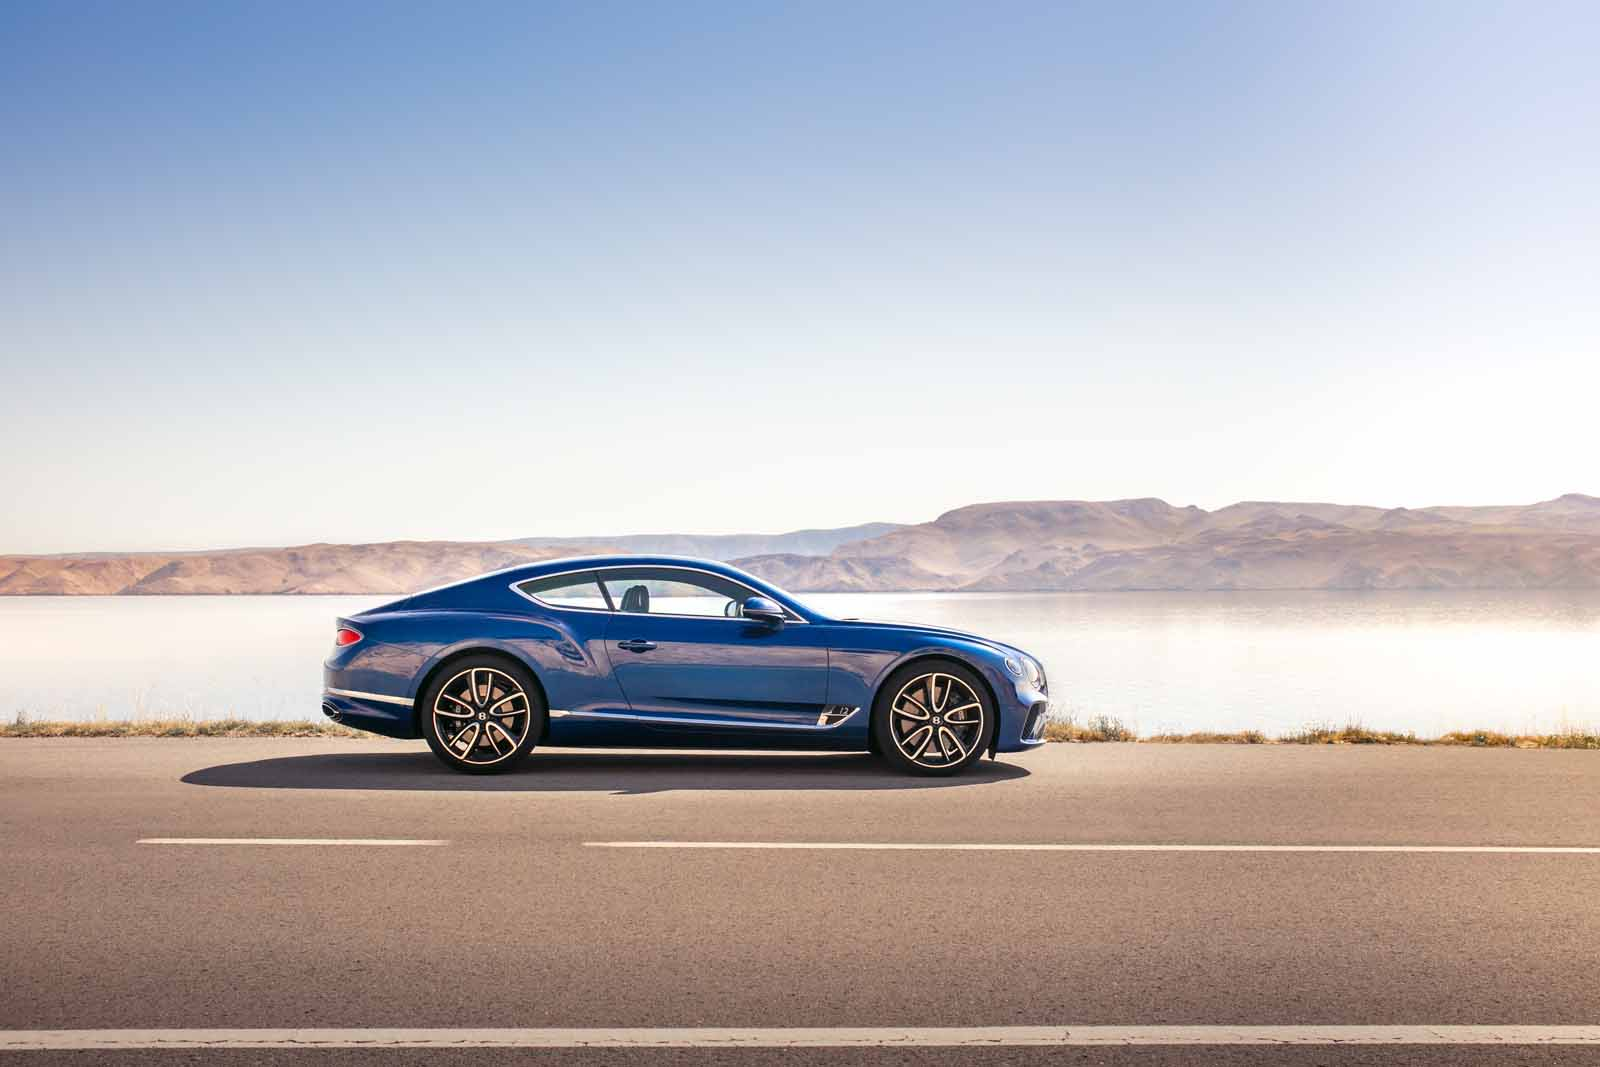 Merveilleux 2018 Bentley Continental GT Aims To Be The Ultimate Grand Tourer